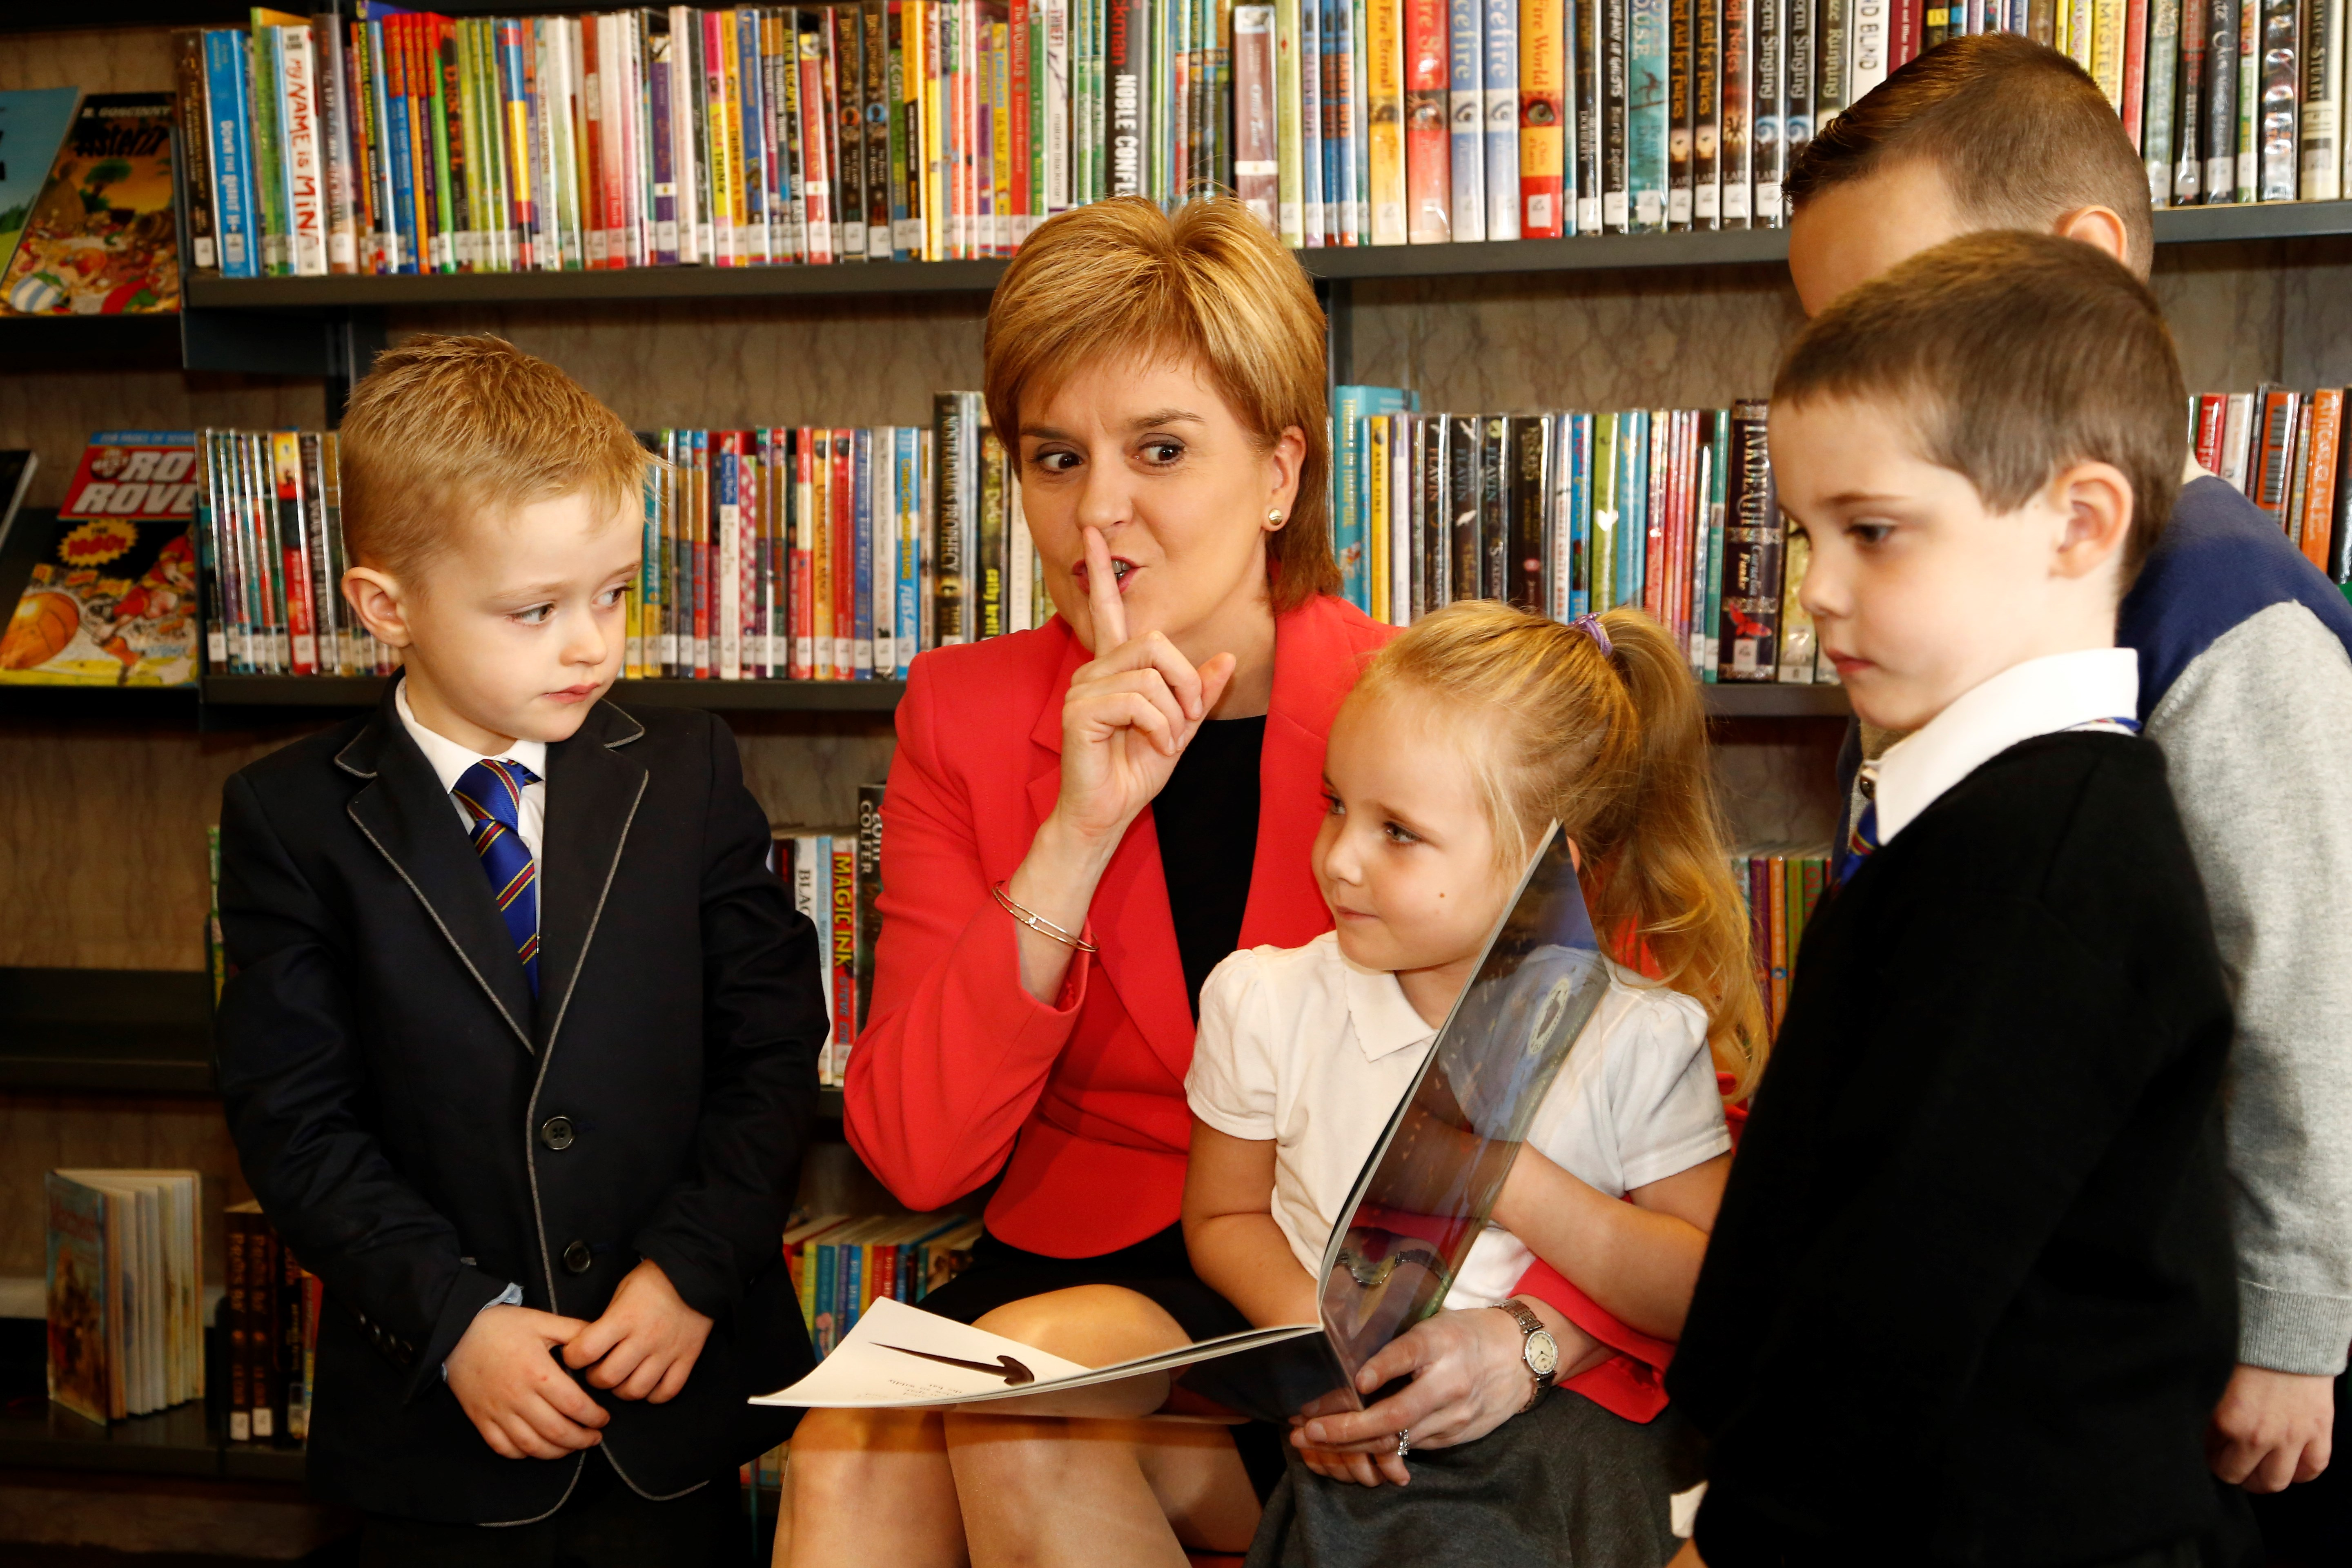 First Minister Nicola Sturgeon launching the Every Child A Library Member project at the Mitchell library in August 2015